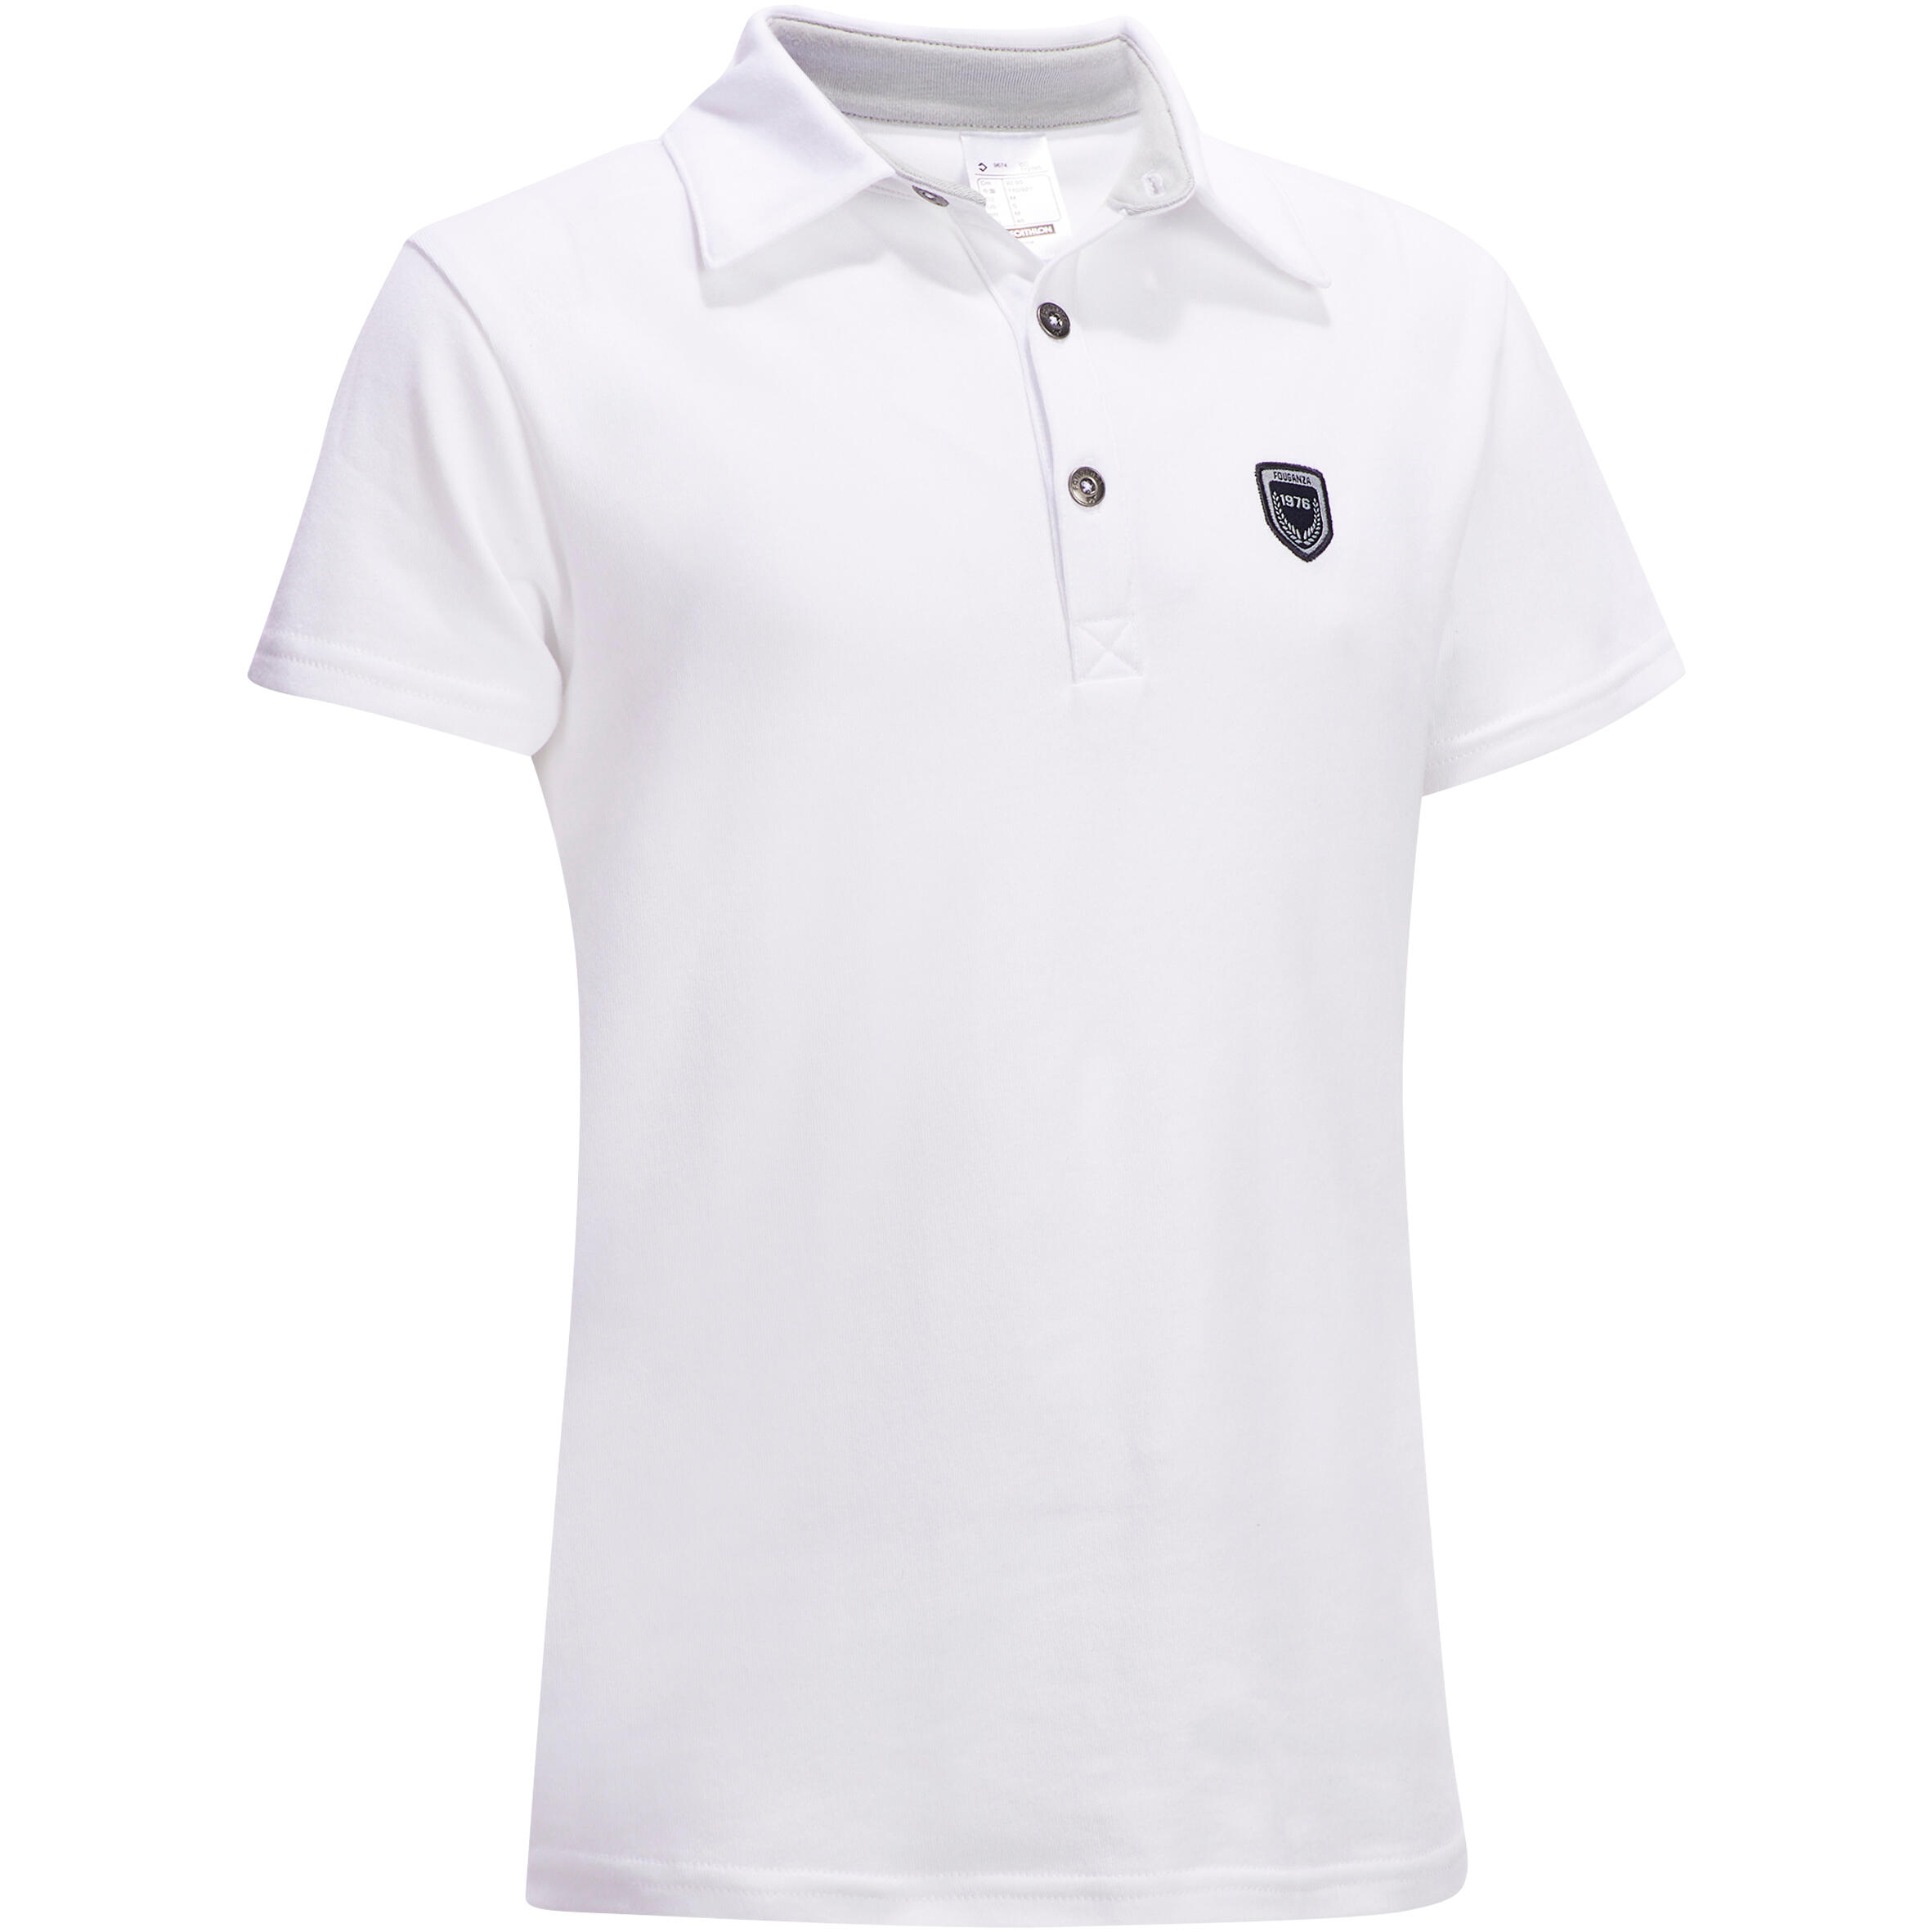 COMP100 Kids' Short-Sleeved Horse Riding Competition Polo - White